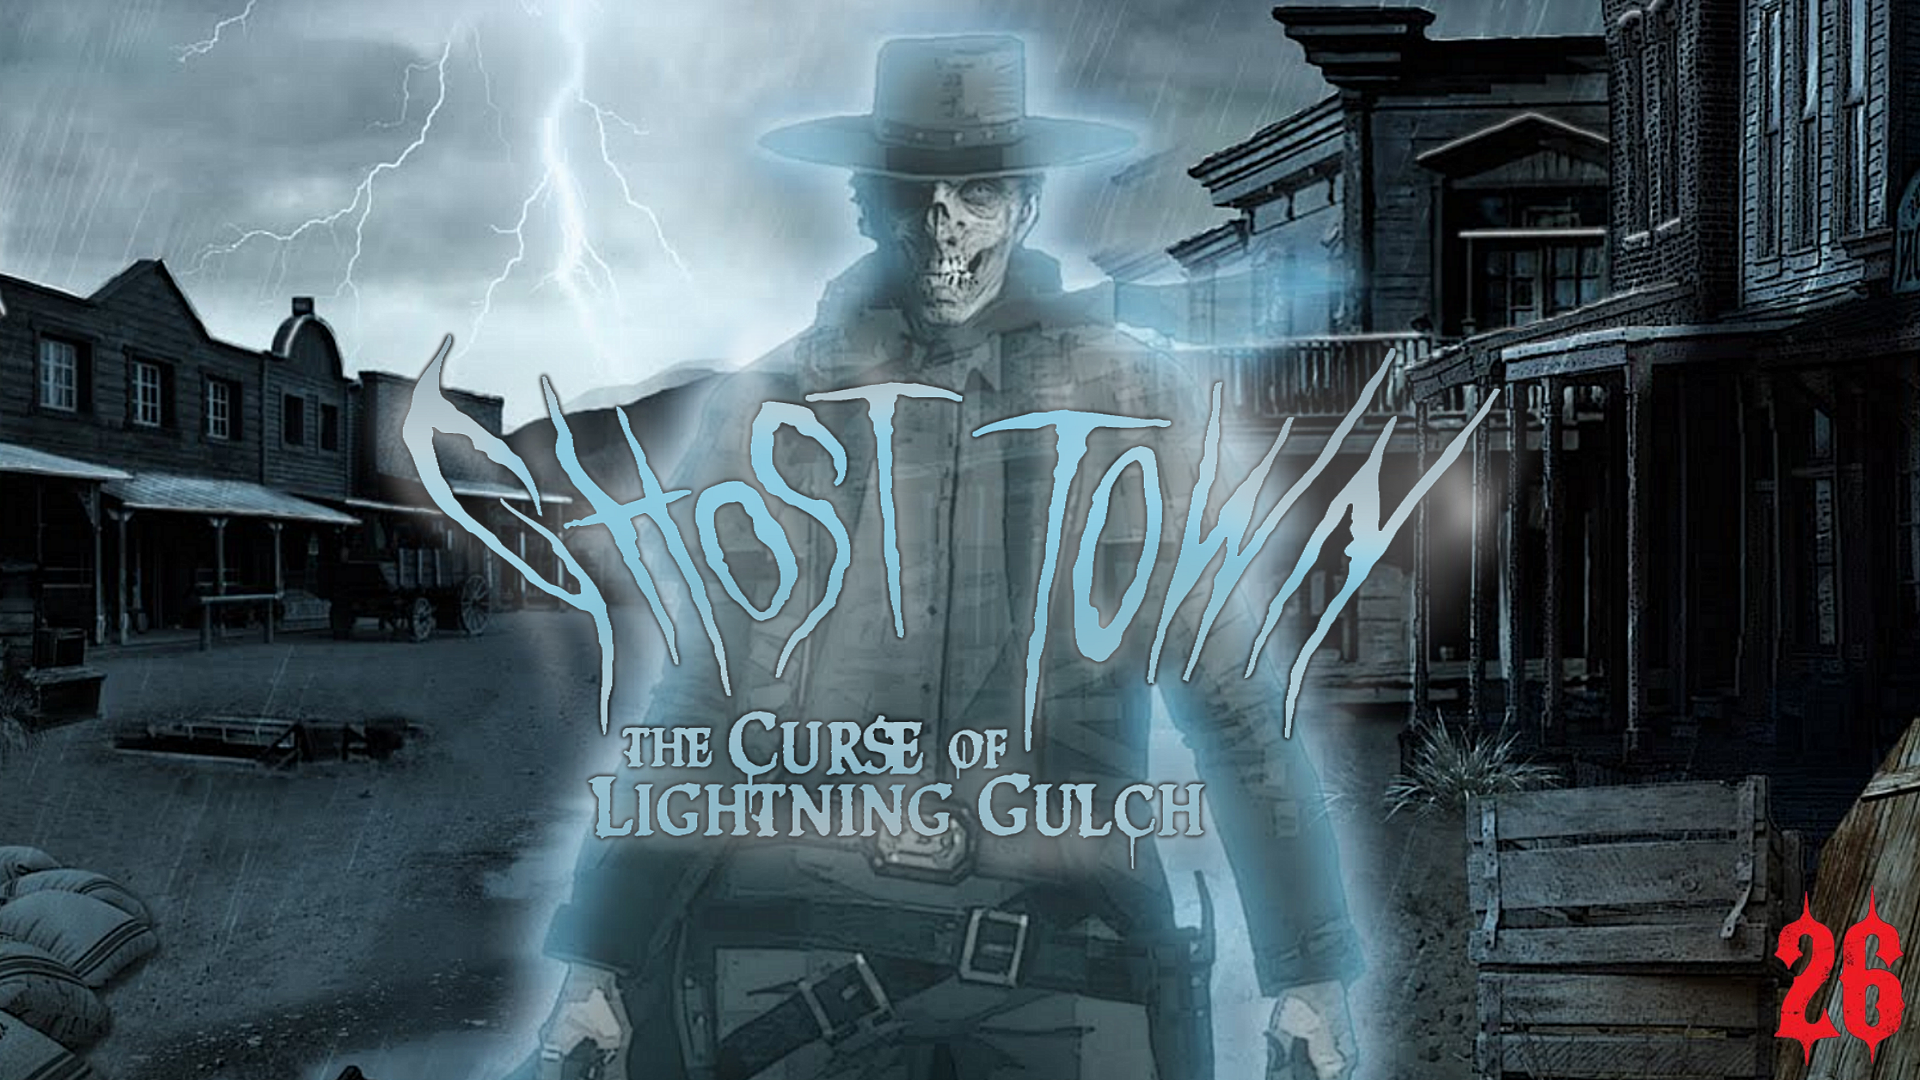 ghost town 2 wallpaper | horror night nightmares